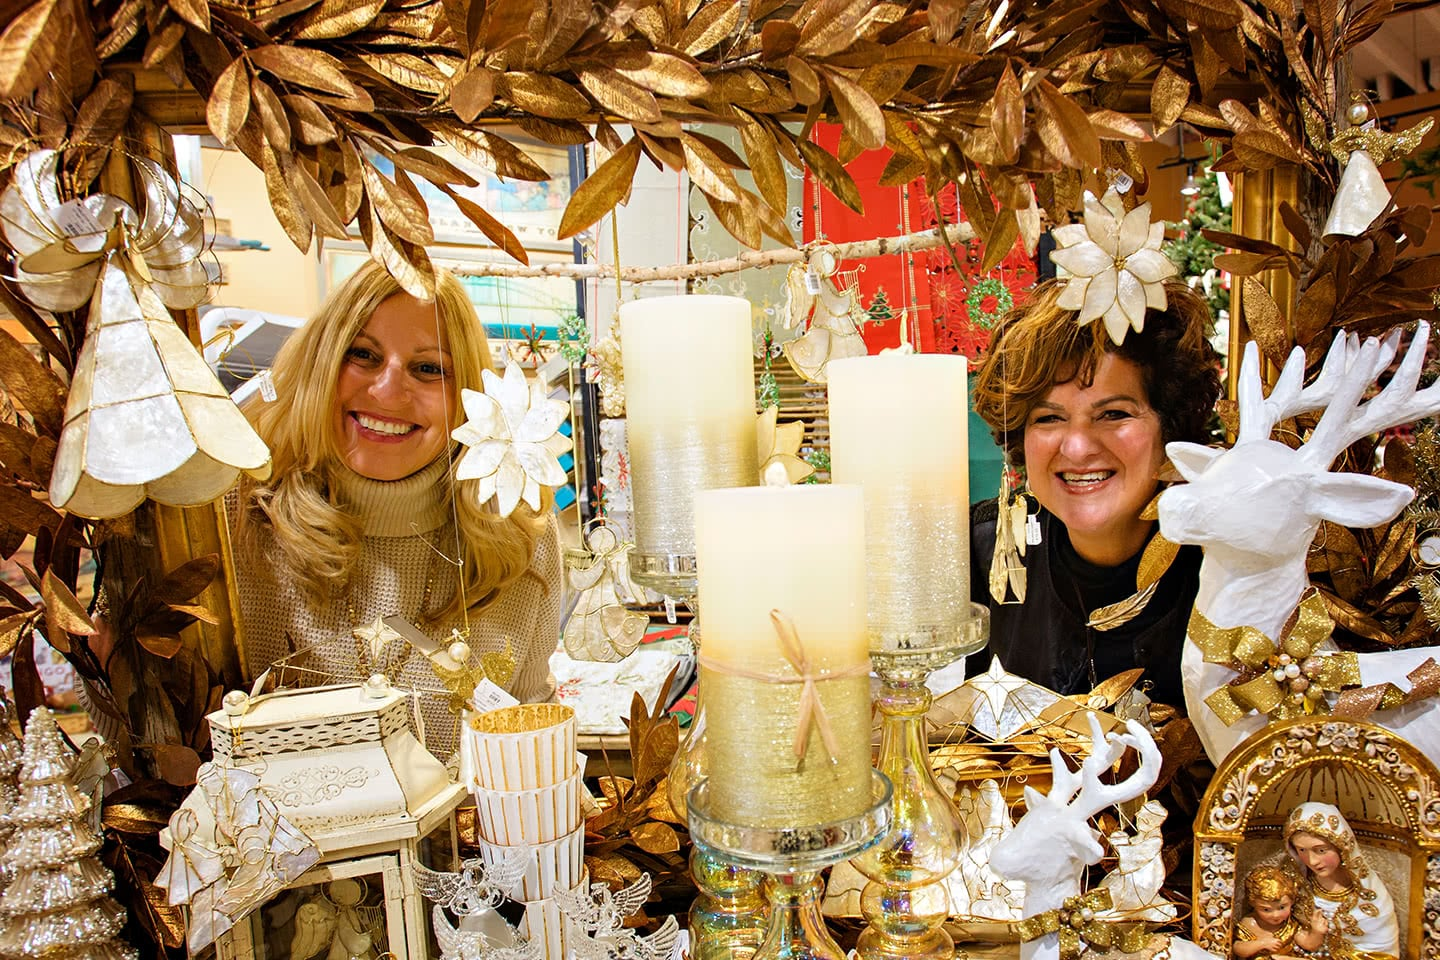 Our Winter Wonderland at Willy Nilly Christmas Store with Holiday Decor